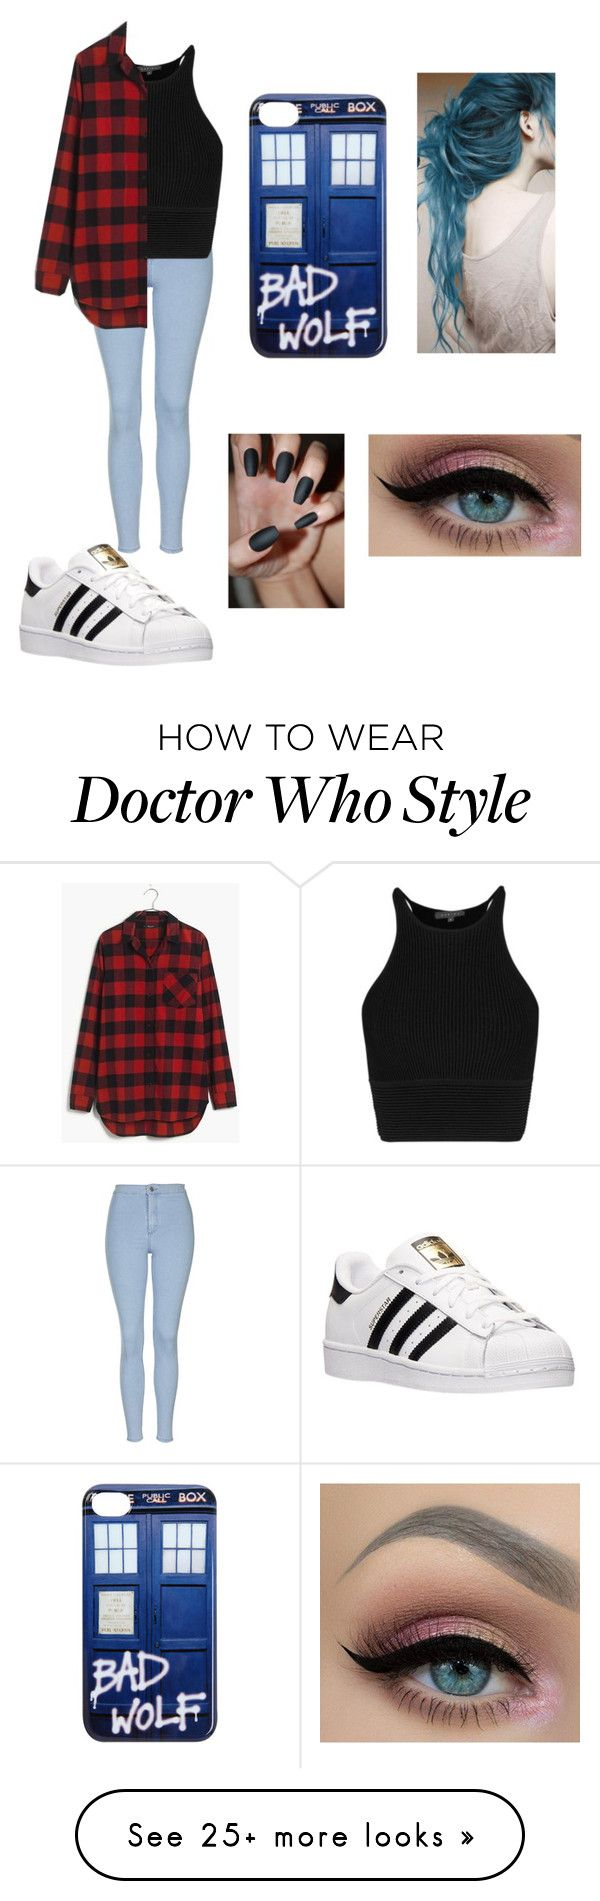 """Bad wolf"" by moonstonepurple on Polyvore featuring Topshop, Madewell and adidas"